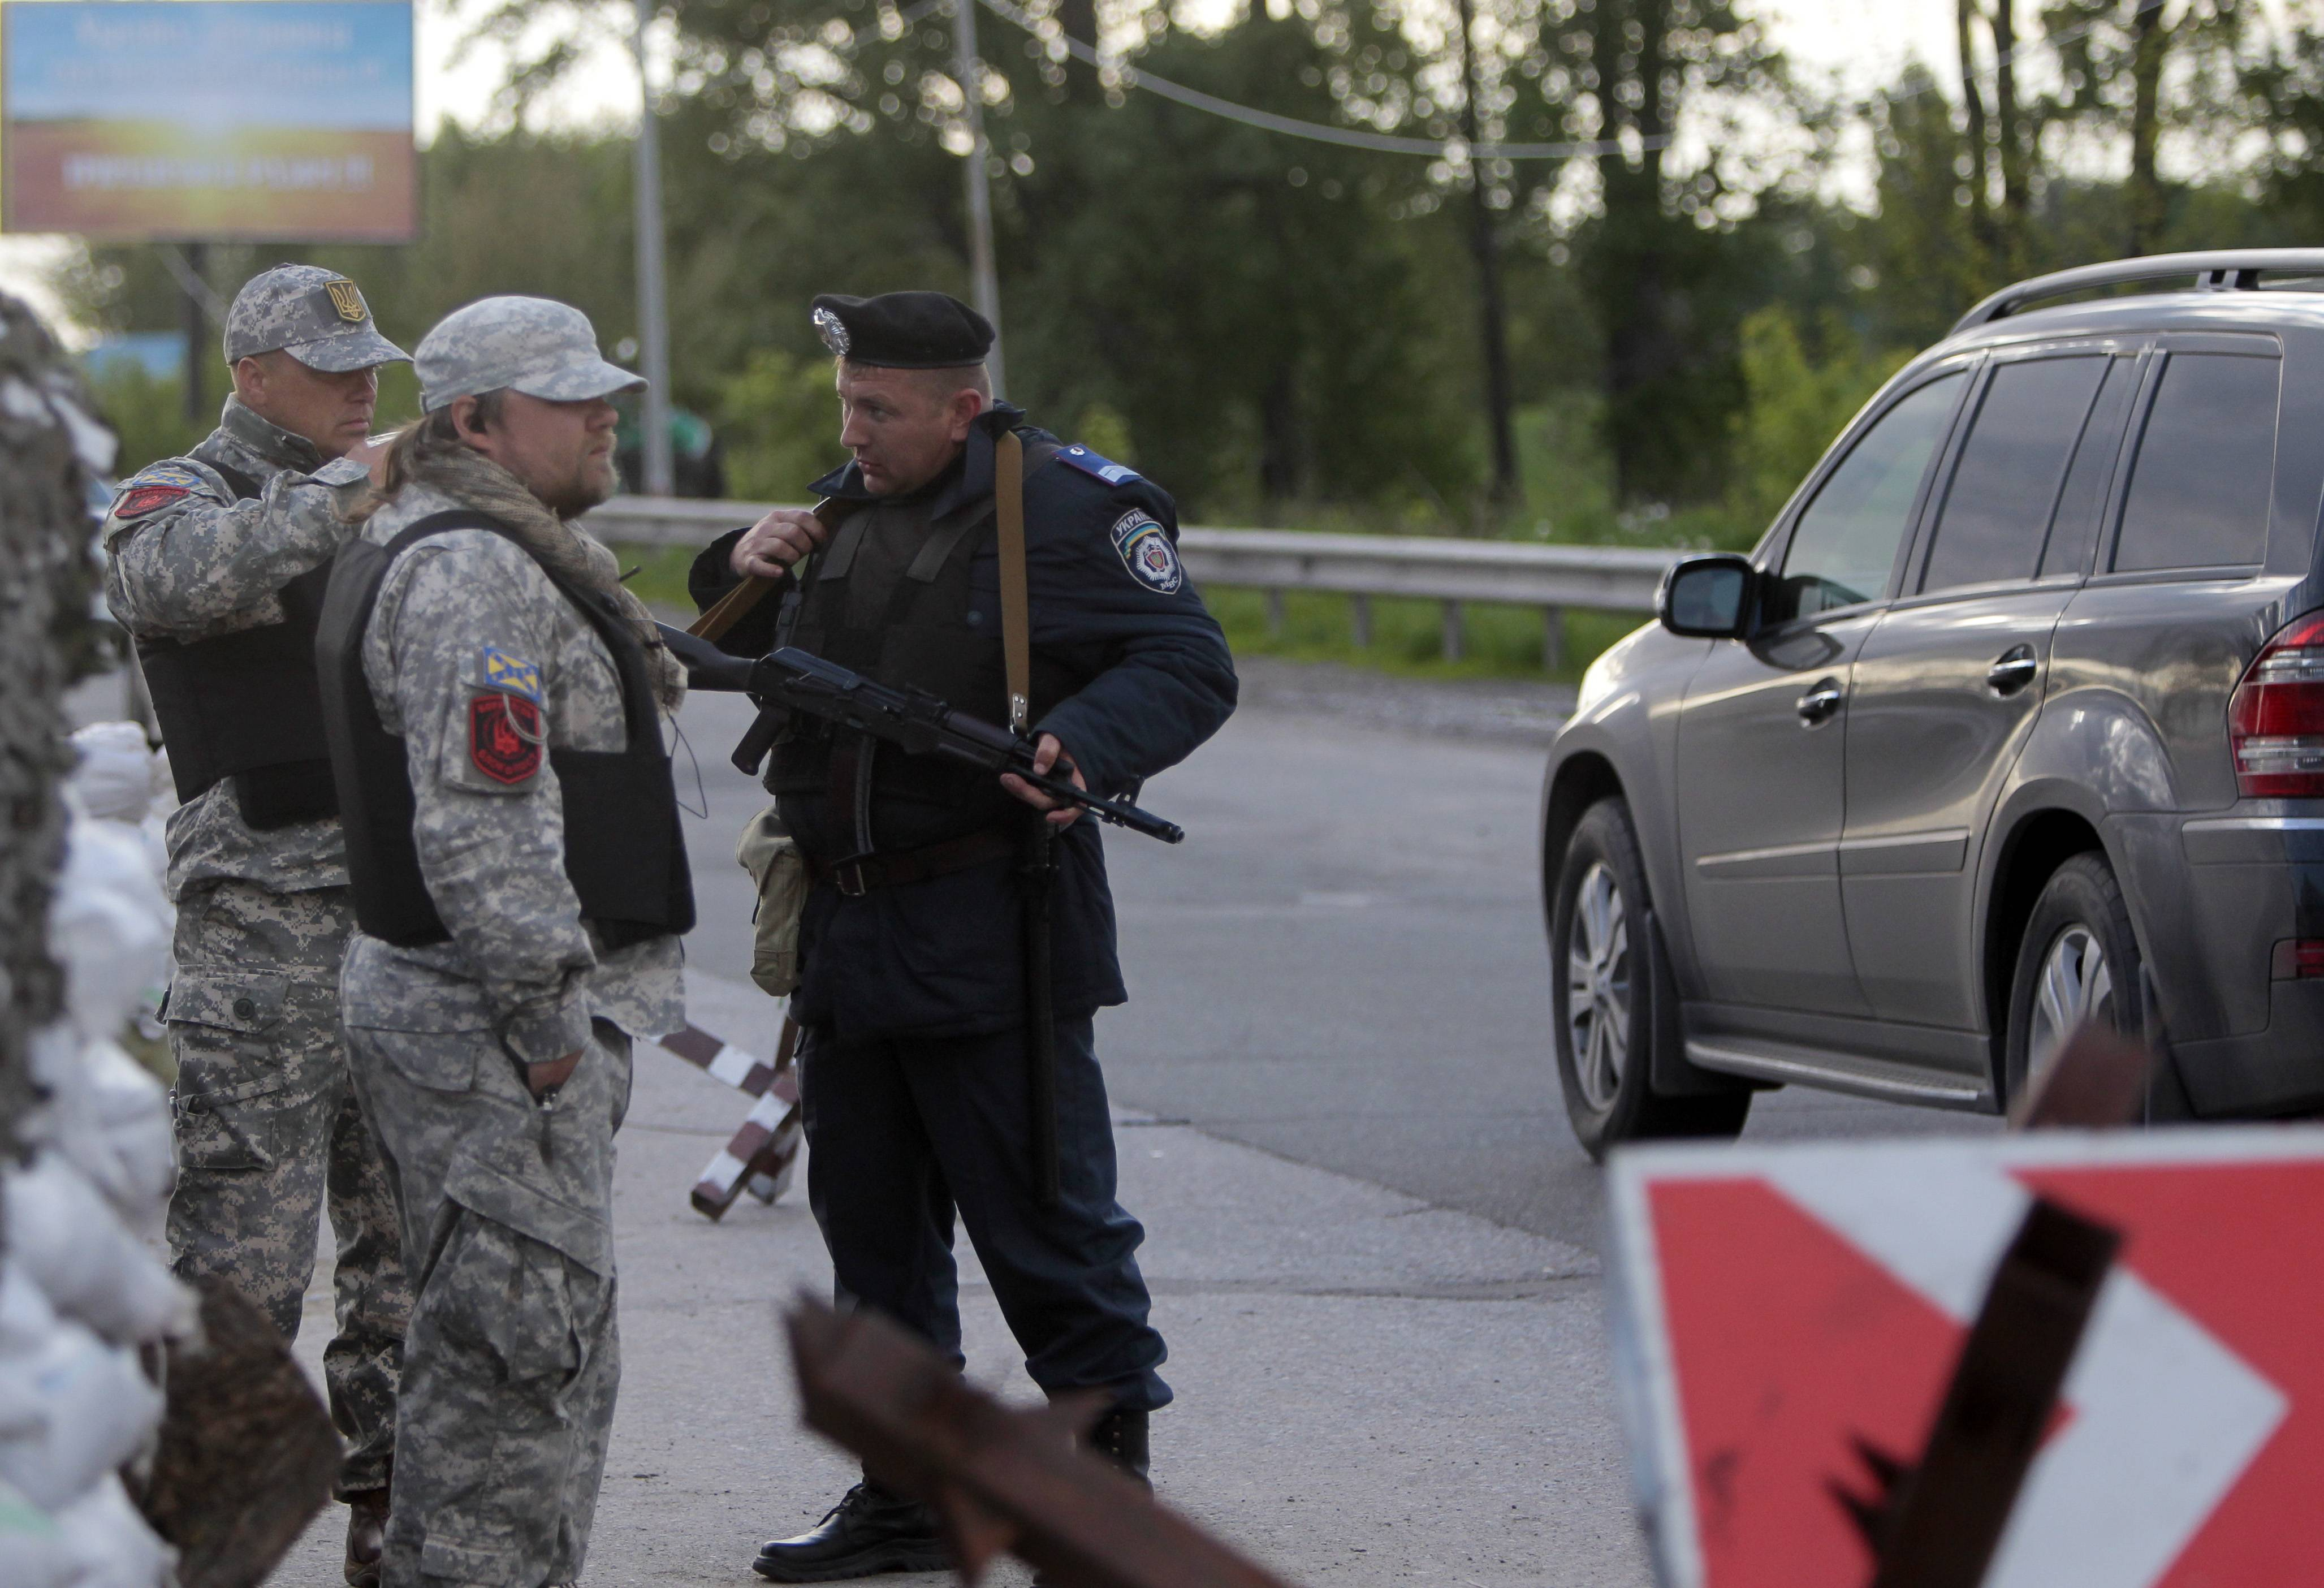 Men talk with policeman on the check point in Boryspil outside Kiev, Ukraine, Monday. Check points have been set up on roads leading to Kiev. The check points are manned by National Guard members and traffic police. They stop cars and buses to prevent terrorists, separatists and criminals from other regions from entering Kiev.